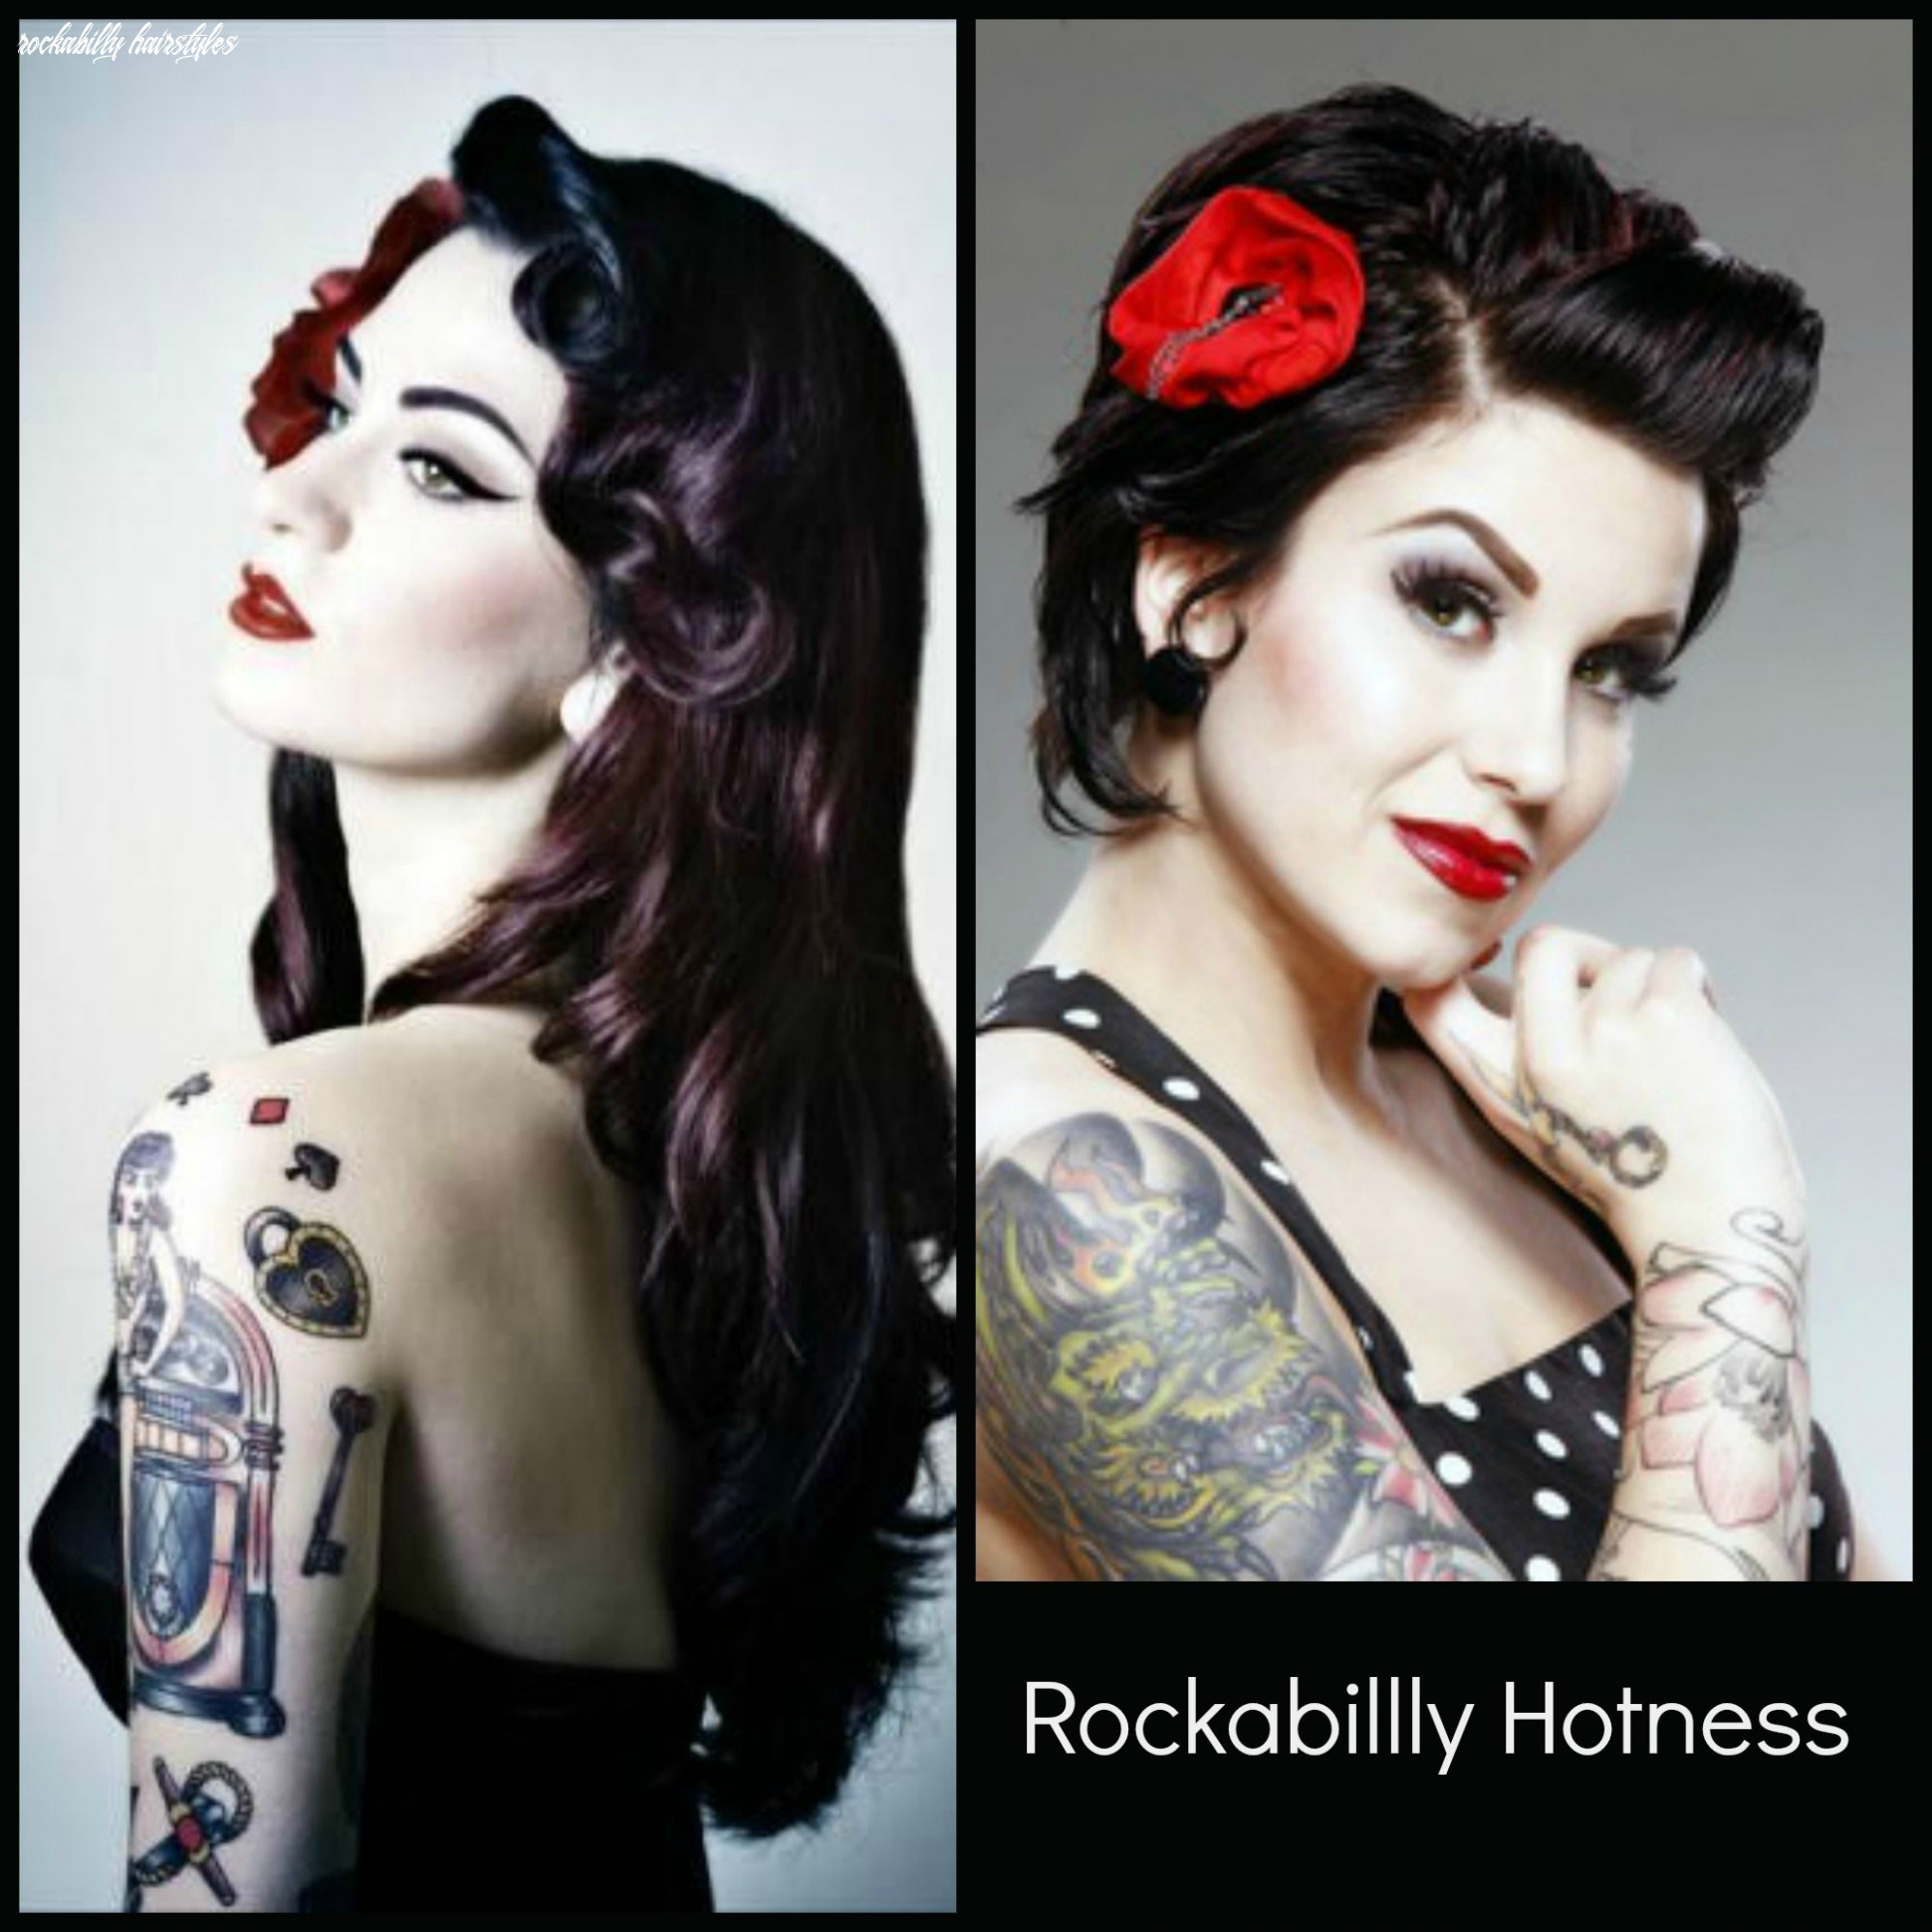 Pin on beauty/makeup rockabilly hairstyles